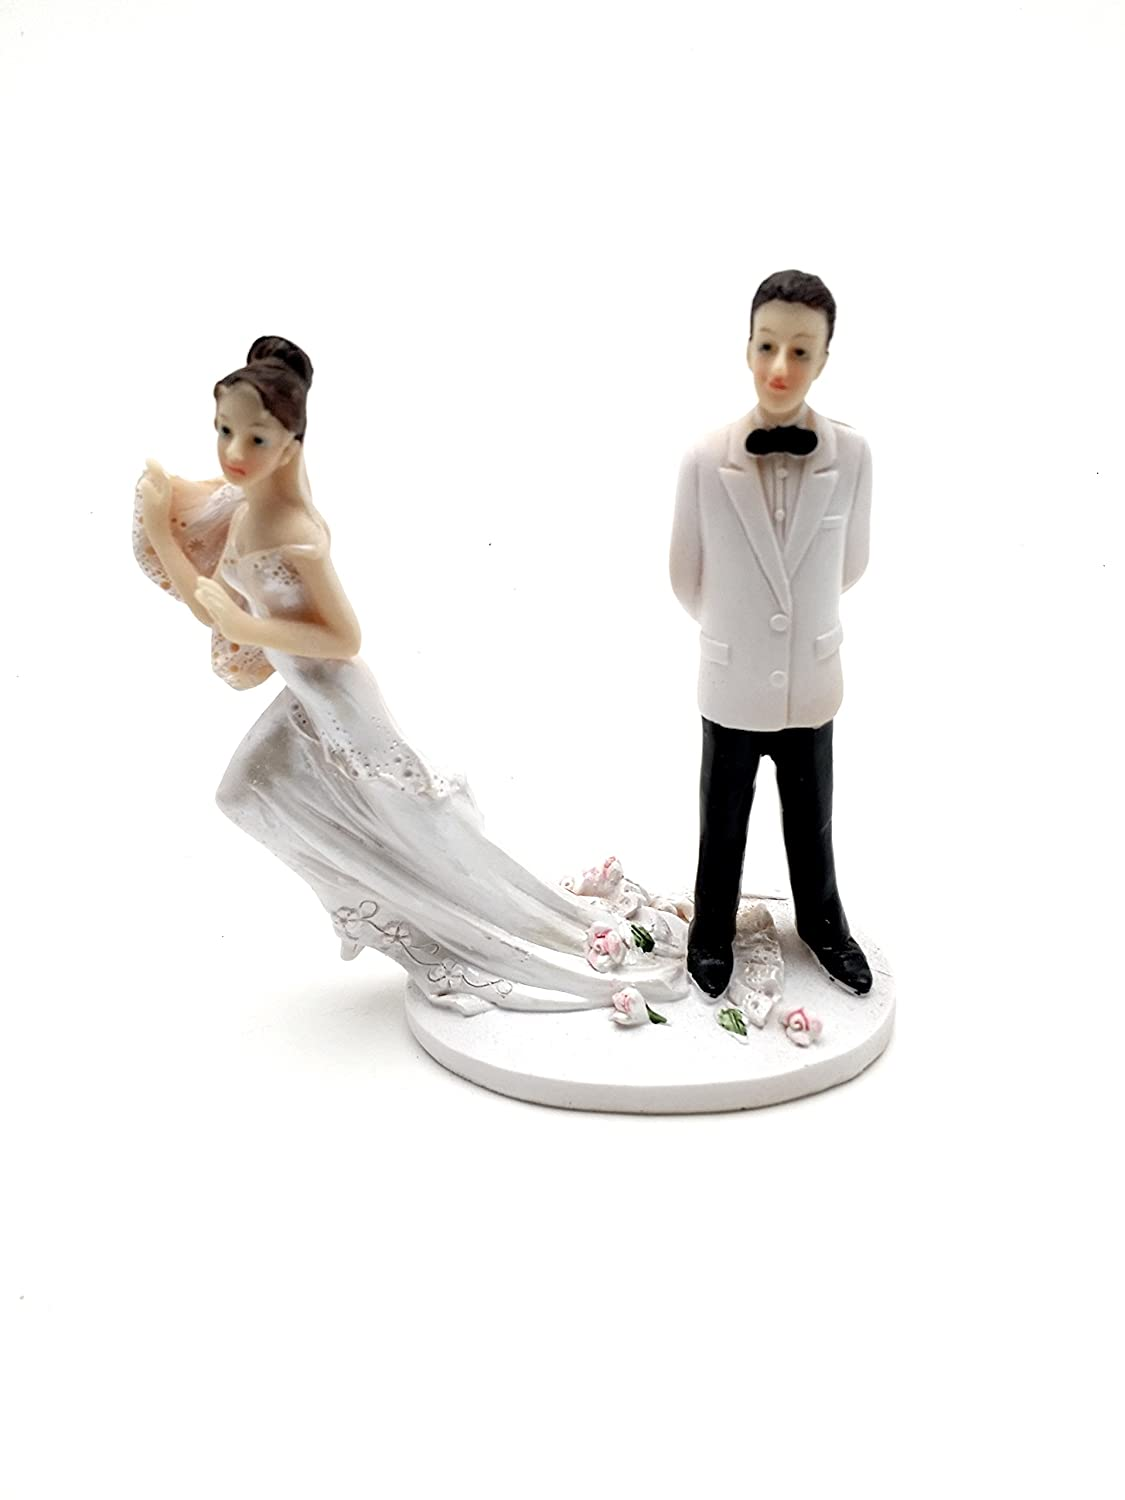 Strange Bride And Groom Cake Top Funny Couple Running Bride Download Free Architecture Designs Scobabritishbridgeorg